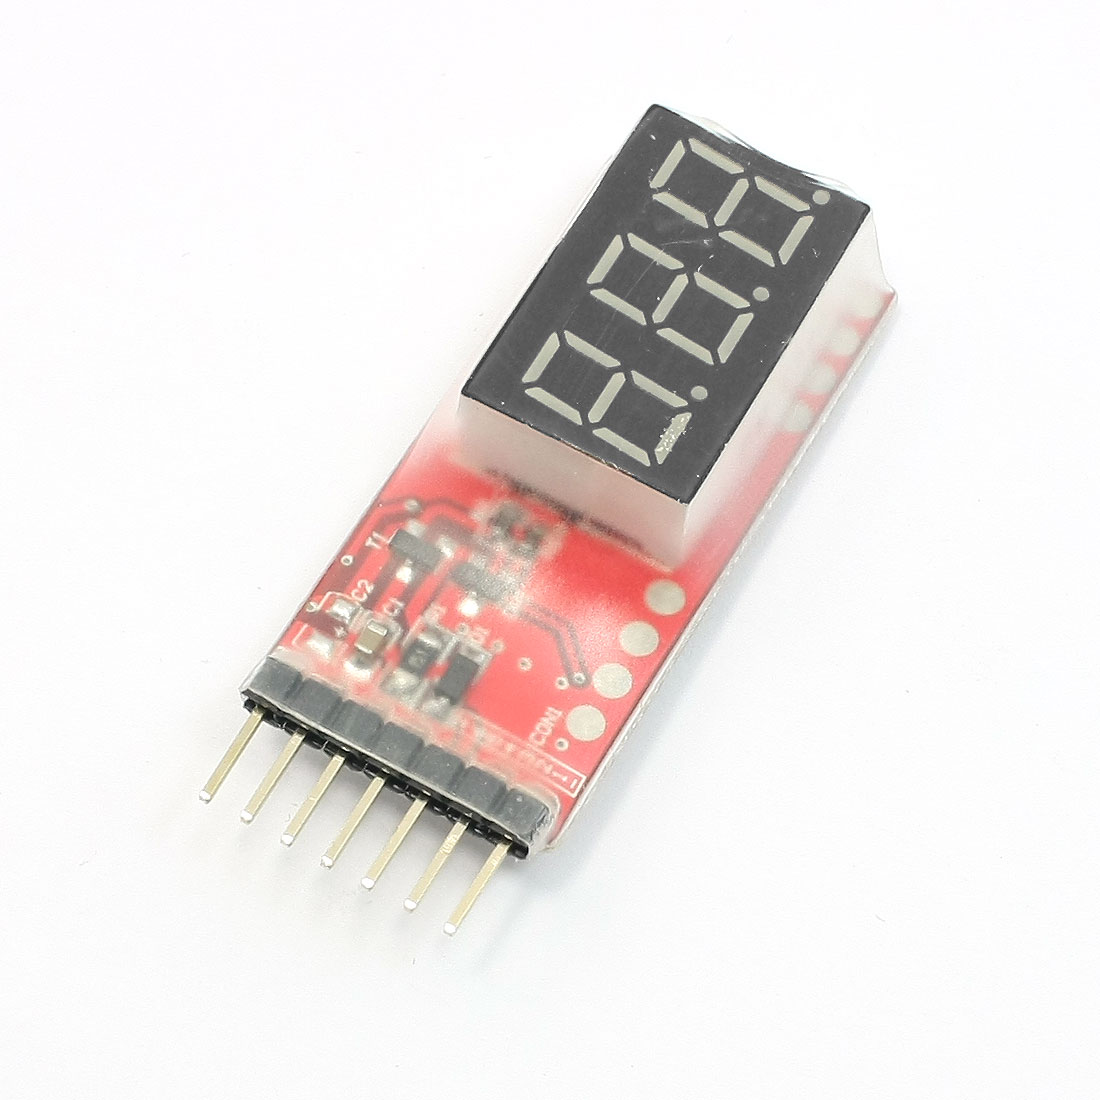 LCD Display Lipo Battery Voltage Tester for RC Toy Airplane Model